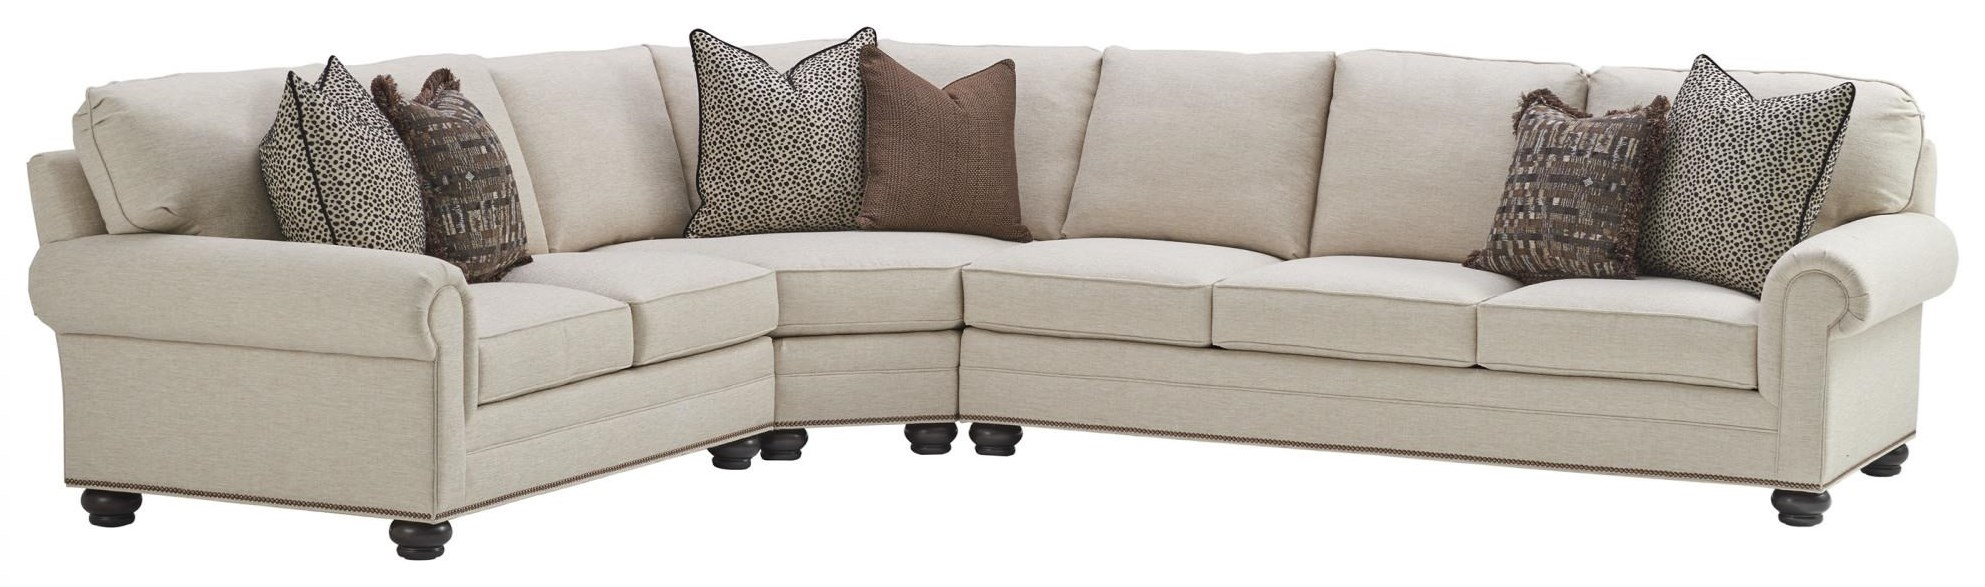 Personal Design Series Customizable Bedford 2 Pc Sectional Sofa by Lexington at Johnny Janosik